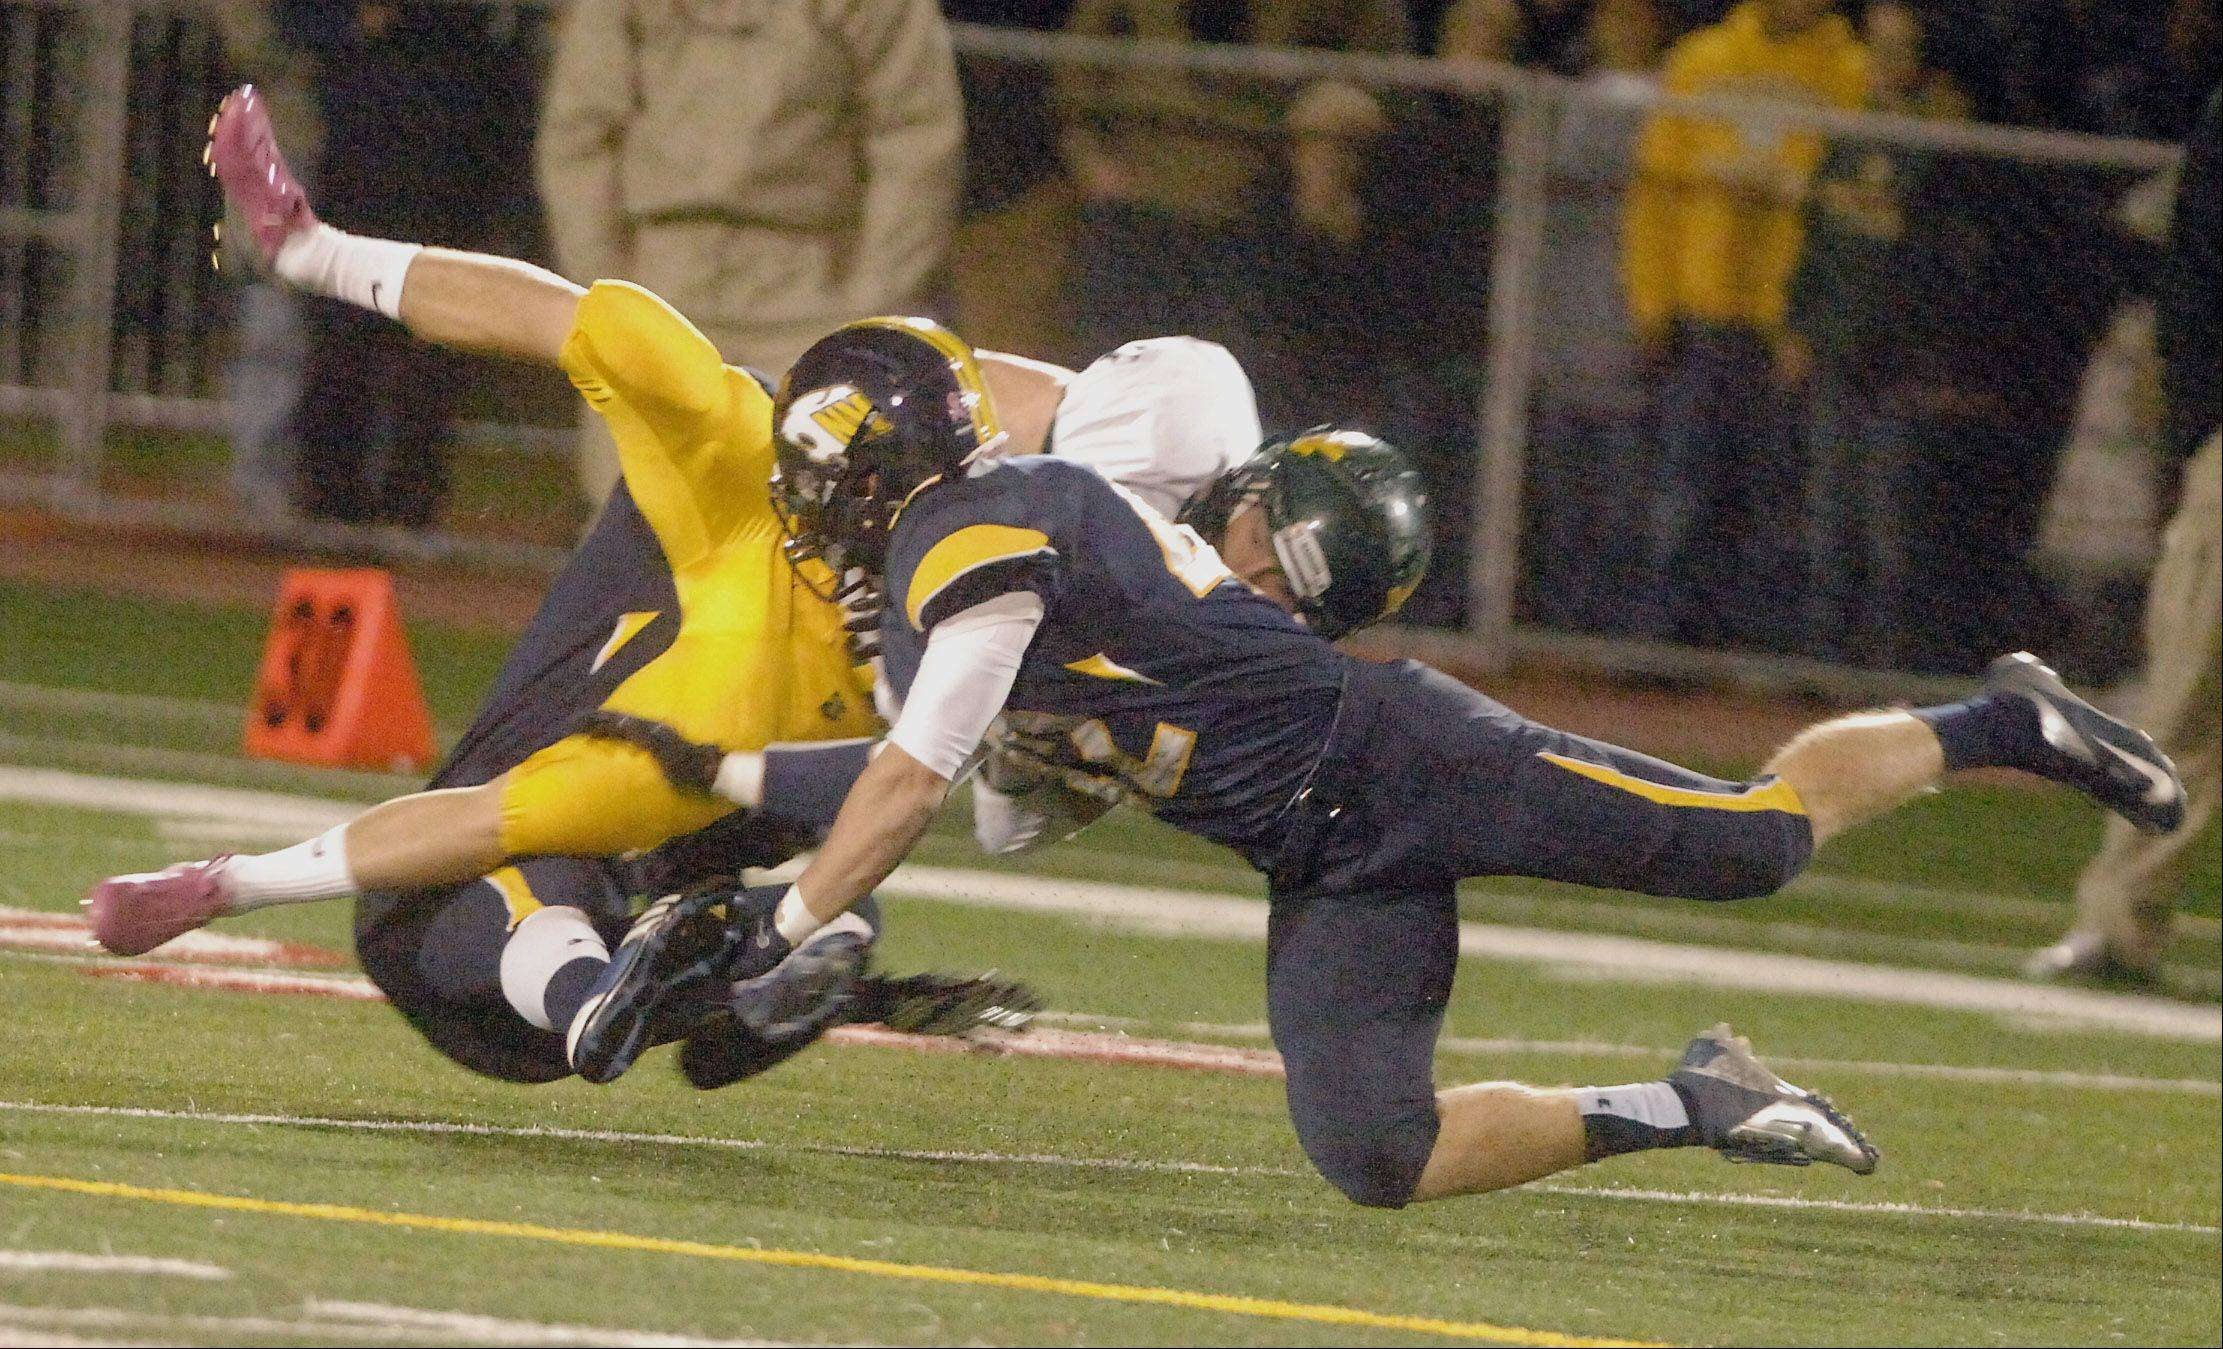 Images: Neuqua Valley vs. Waubonsie Valley football at North Central College